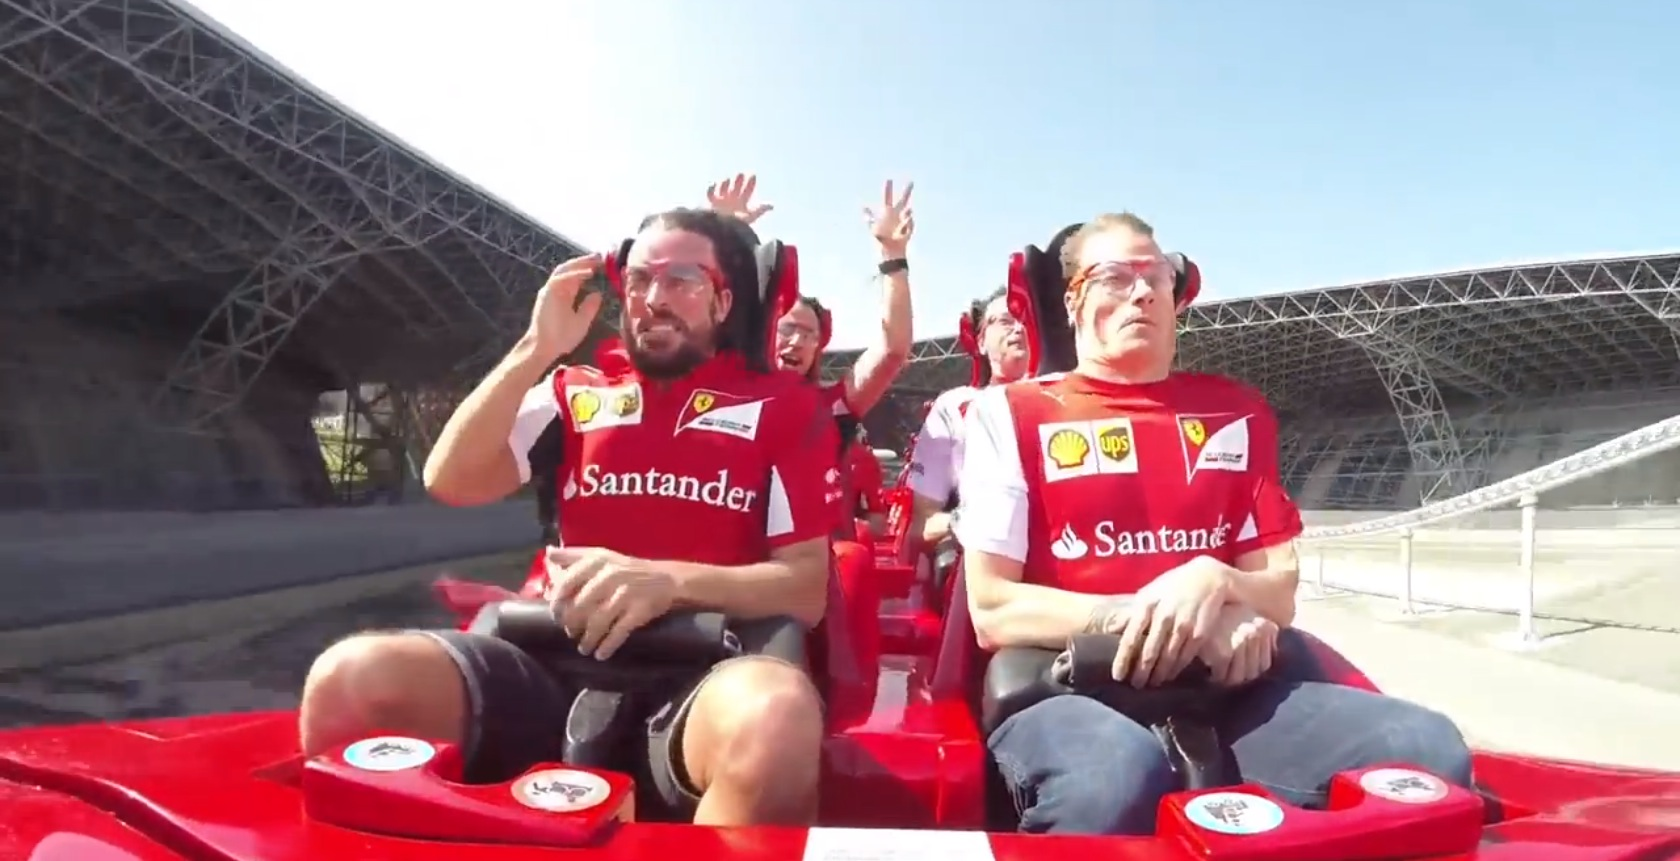 F1 Drivers Raikkonen And Alonso Keep It Cool At 48Gs On A